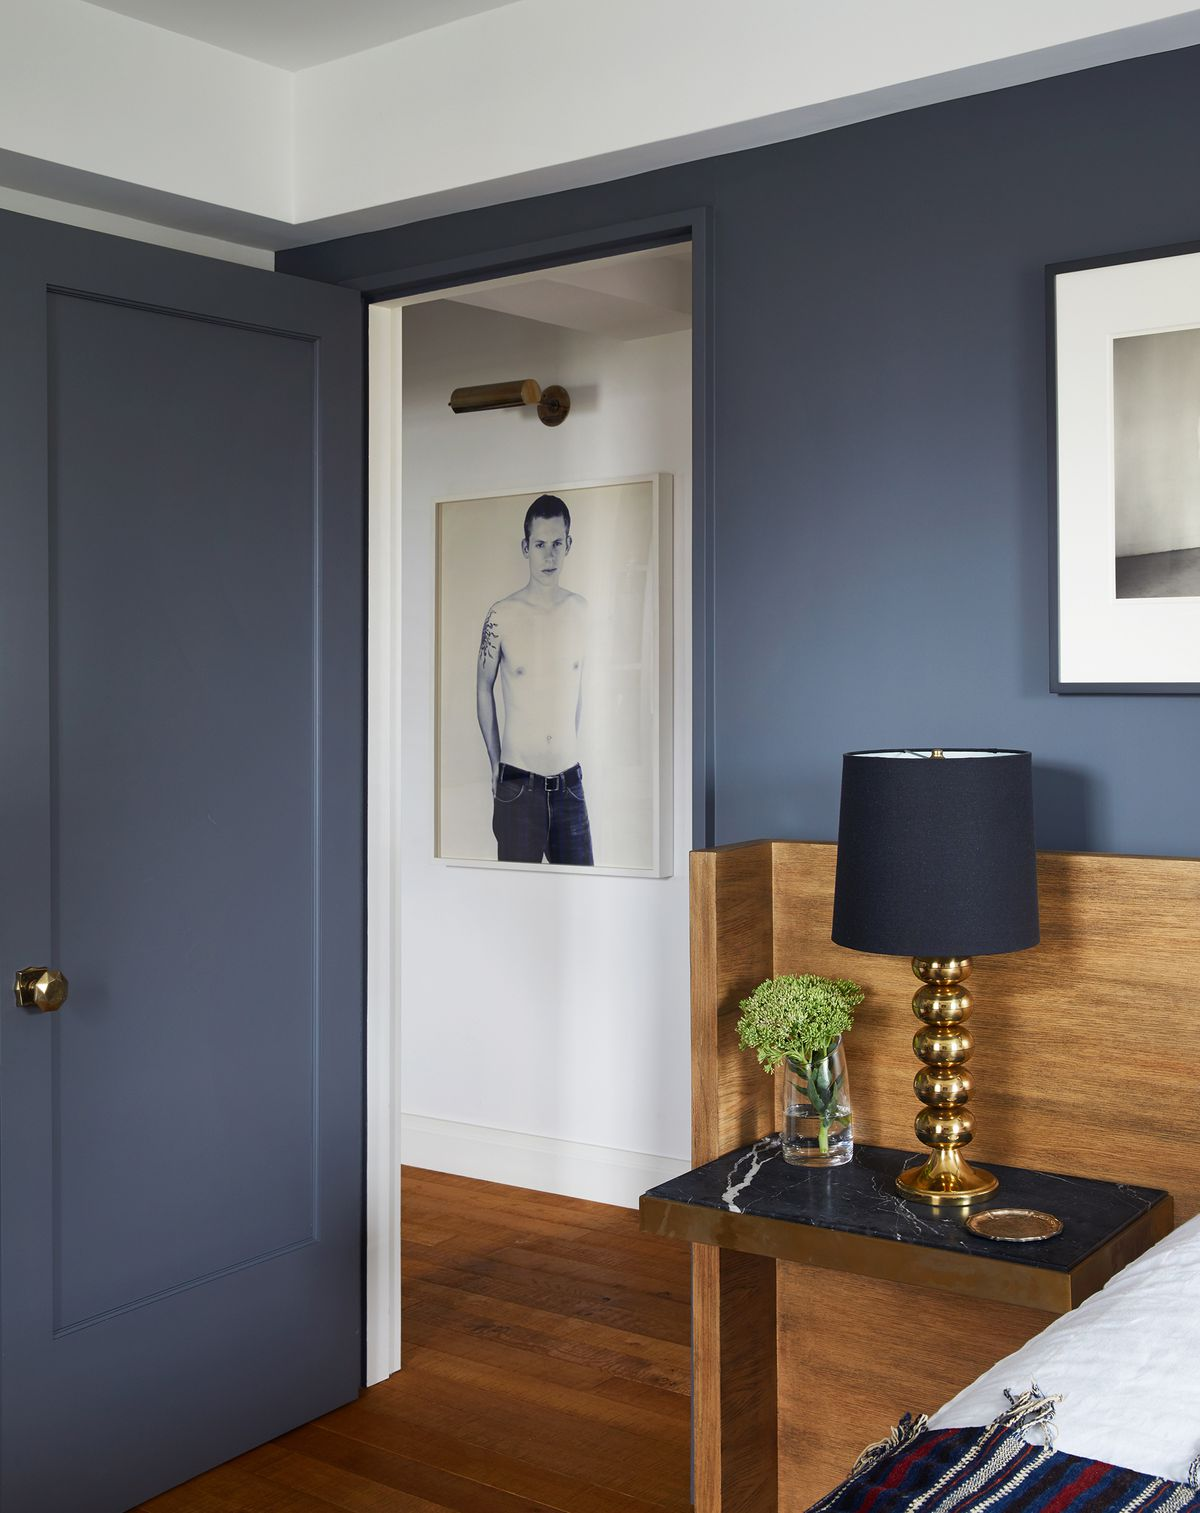 A dark gray bedroom has a wood headboard and white bedding. A black-and-white photo of a shirtless male is visible through the open door.